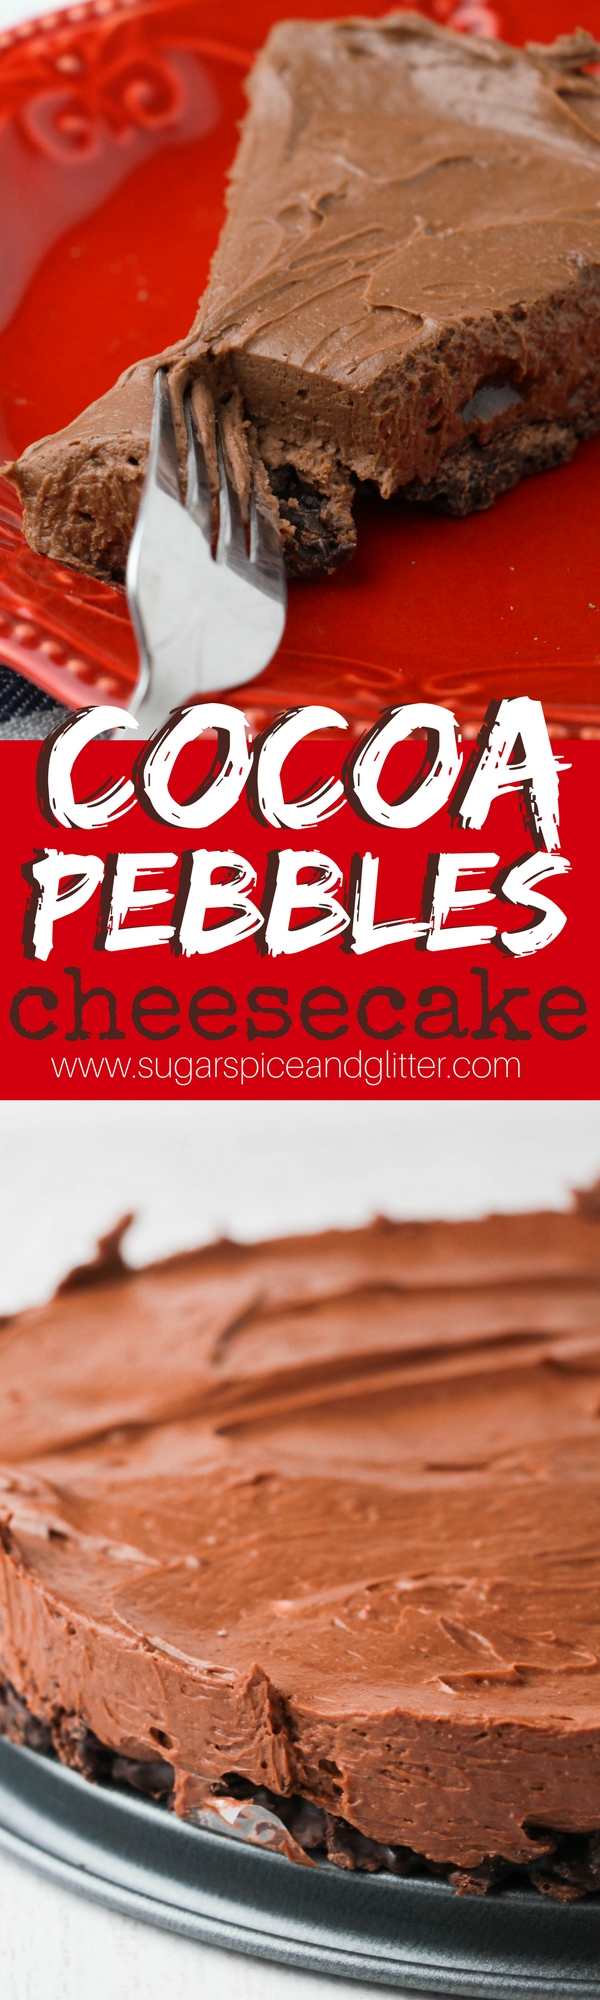 Triple chocolate cocoa pebbles cheesecake recipe - a no-bake chocolate cheesecake with a double chocolate crunch base